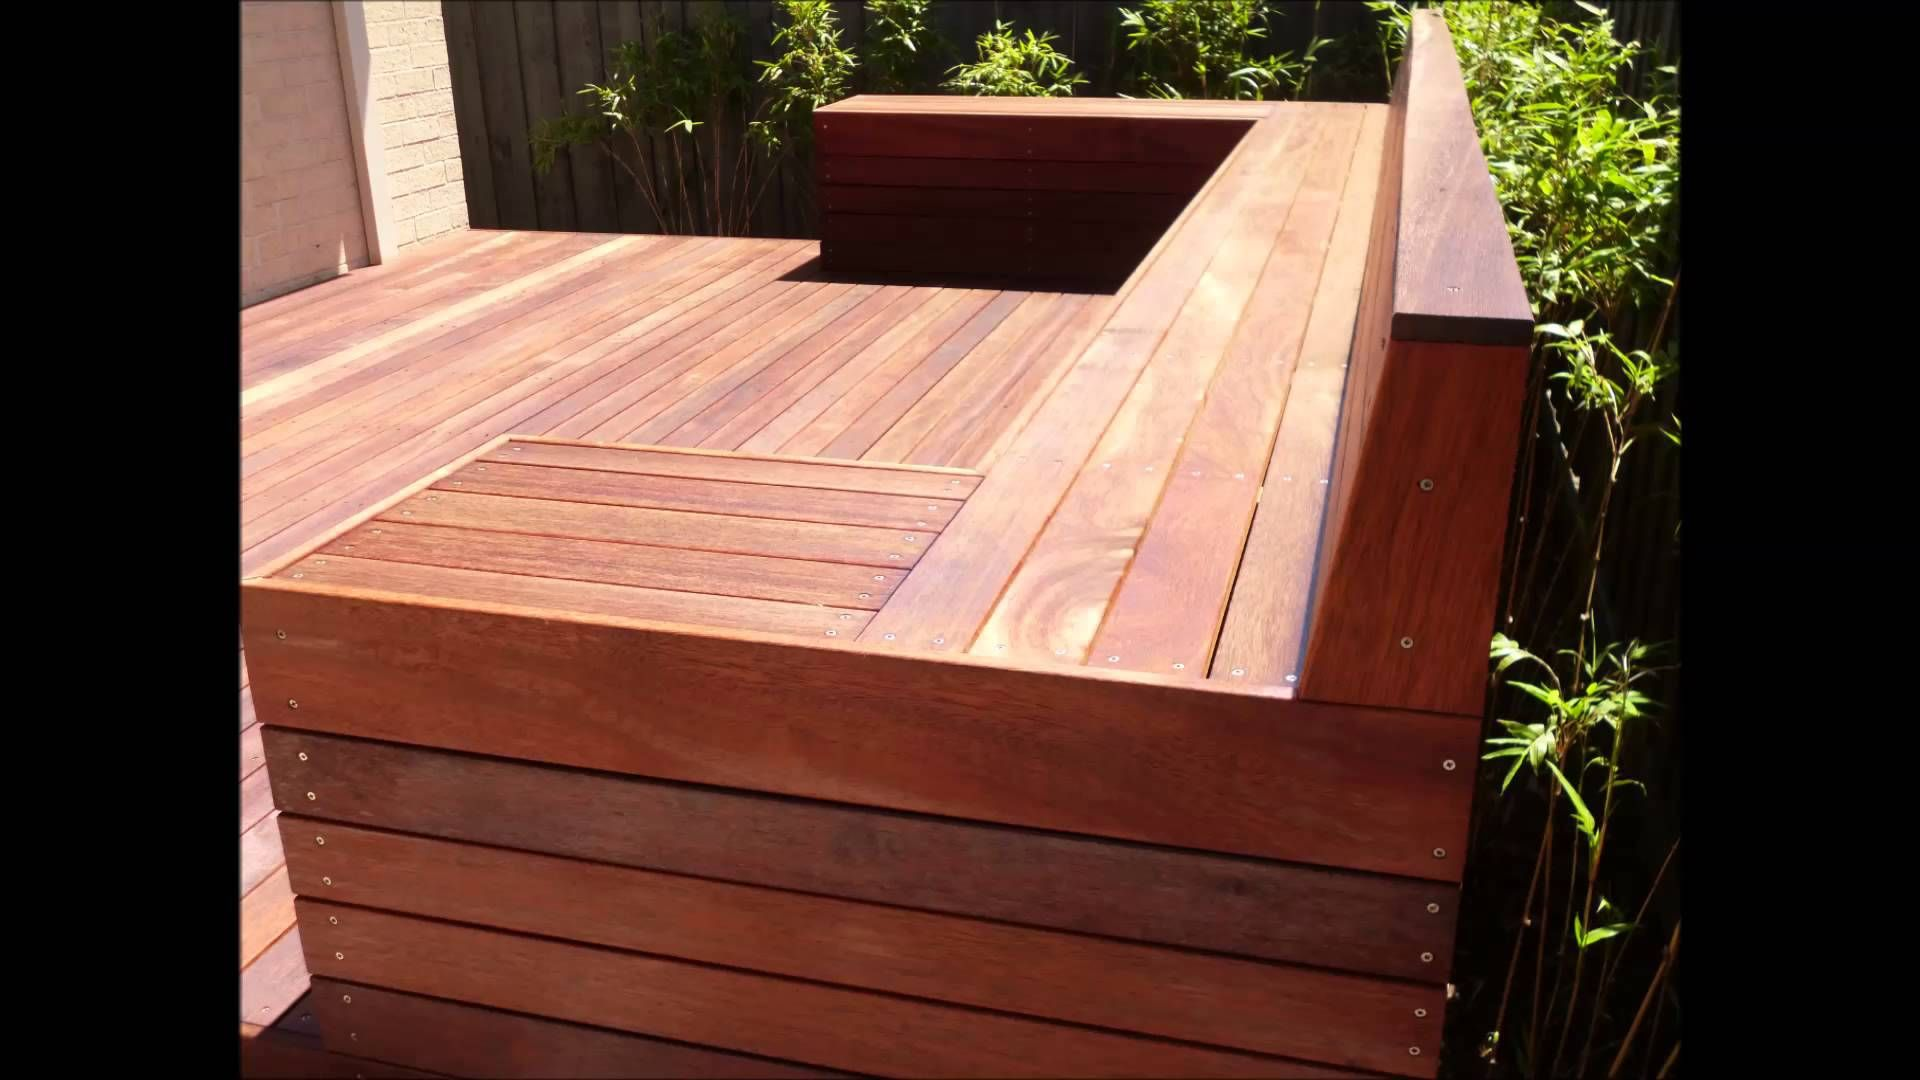 How To Build A Timber Deck With A Bench Seat With Images Deck